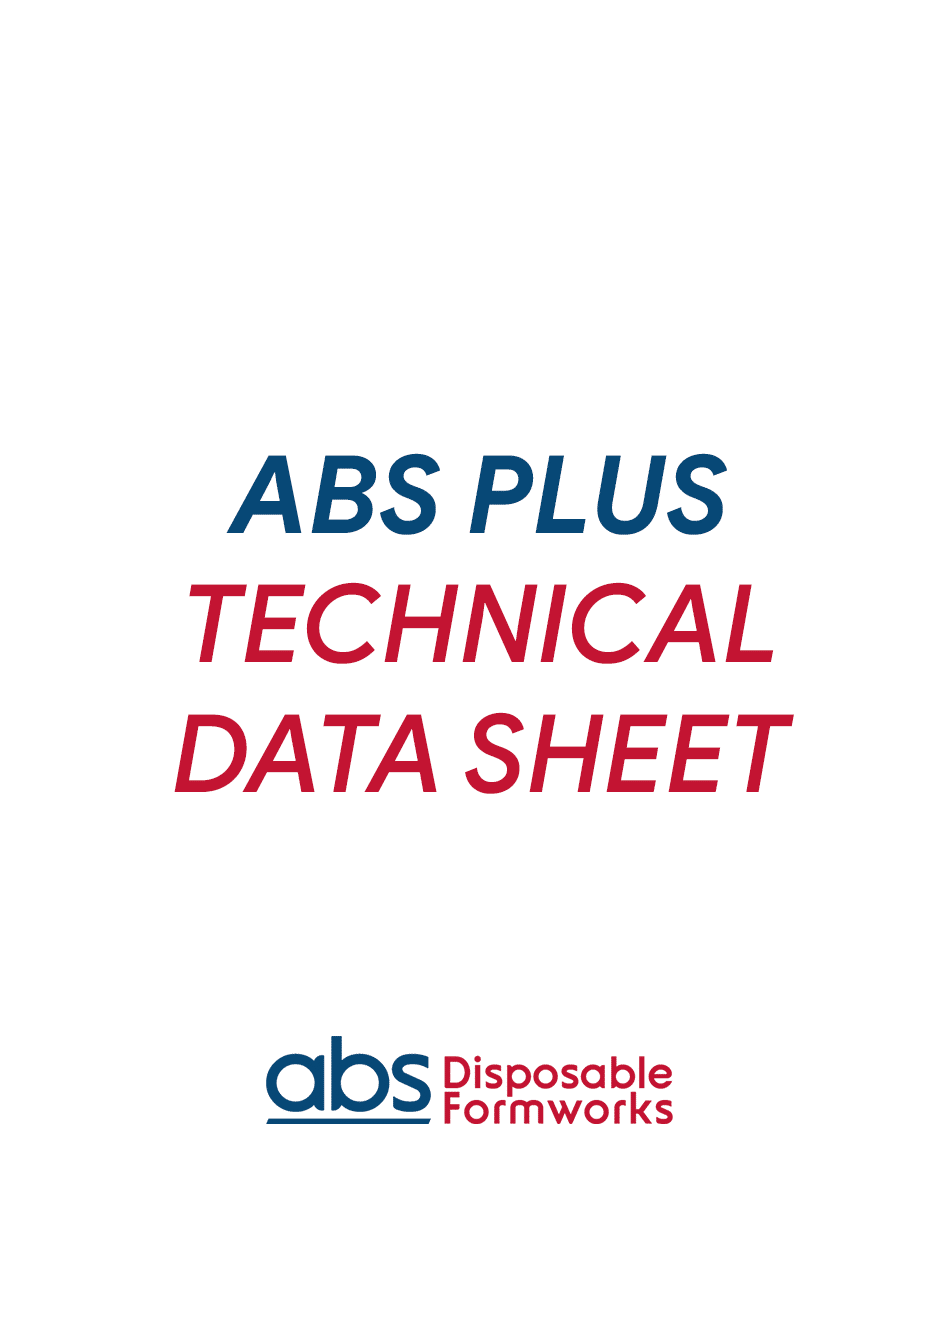 ABS_PLUS_TECHNICAL_DATA SHEET_COVER